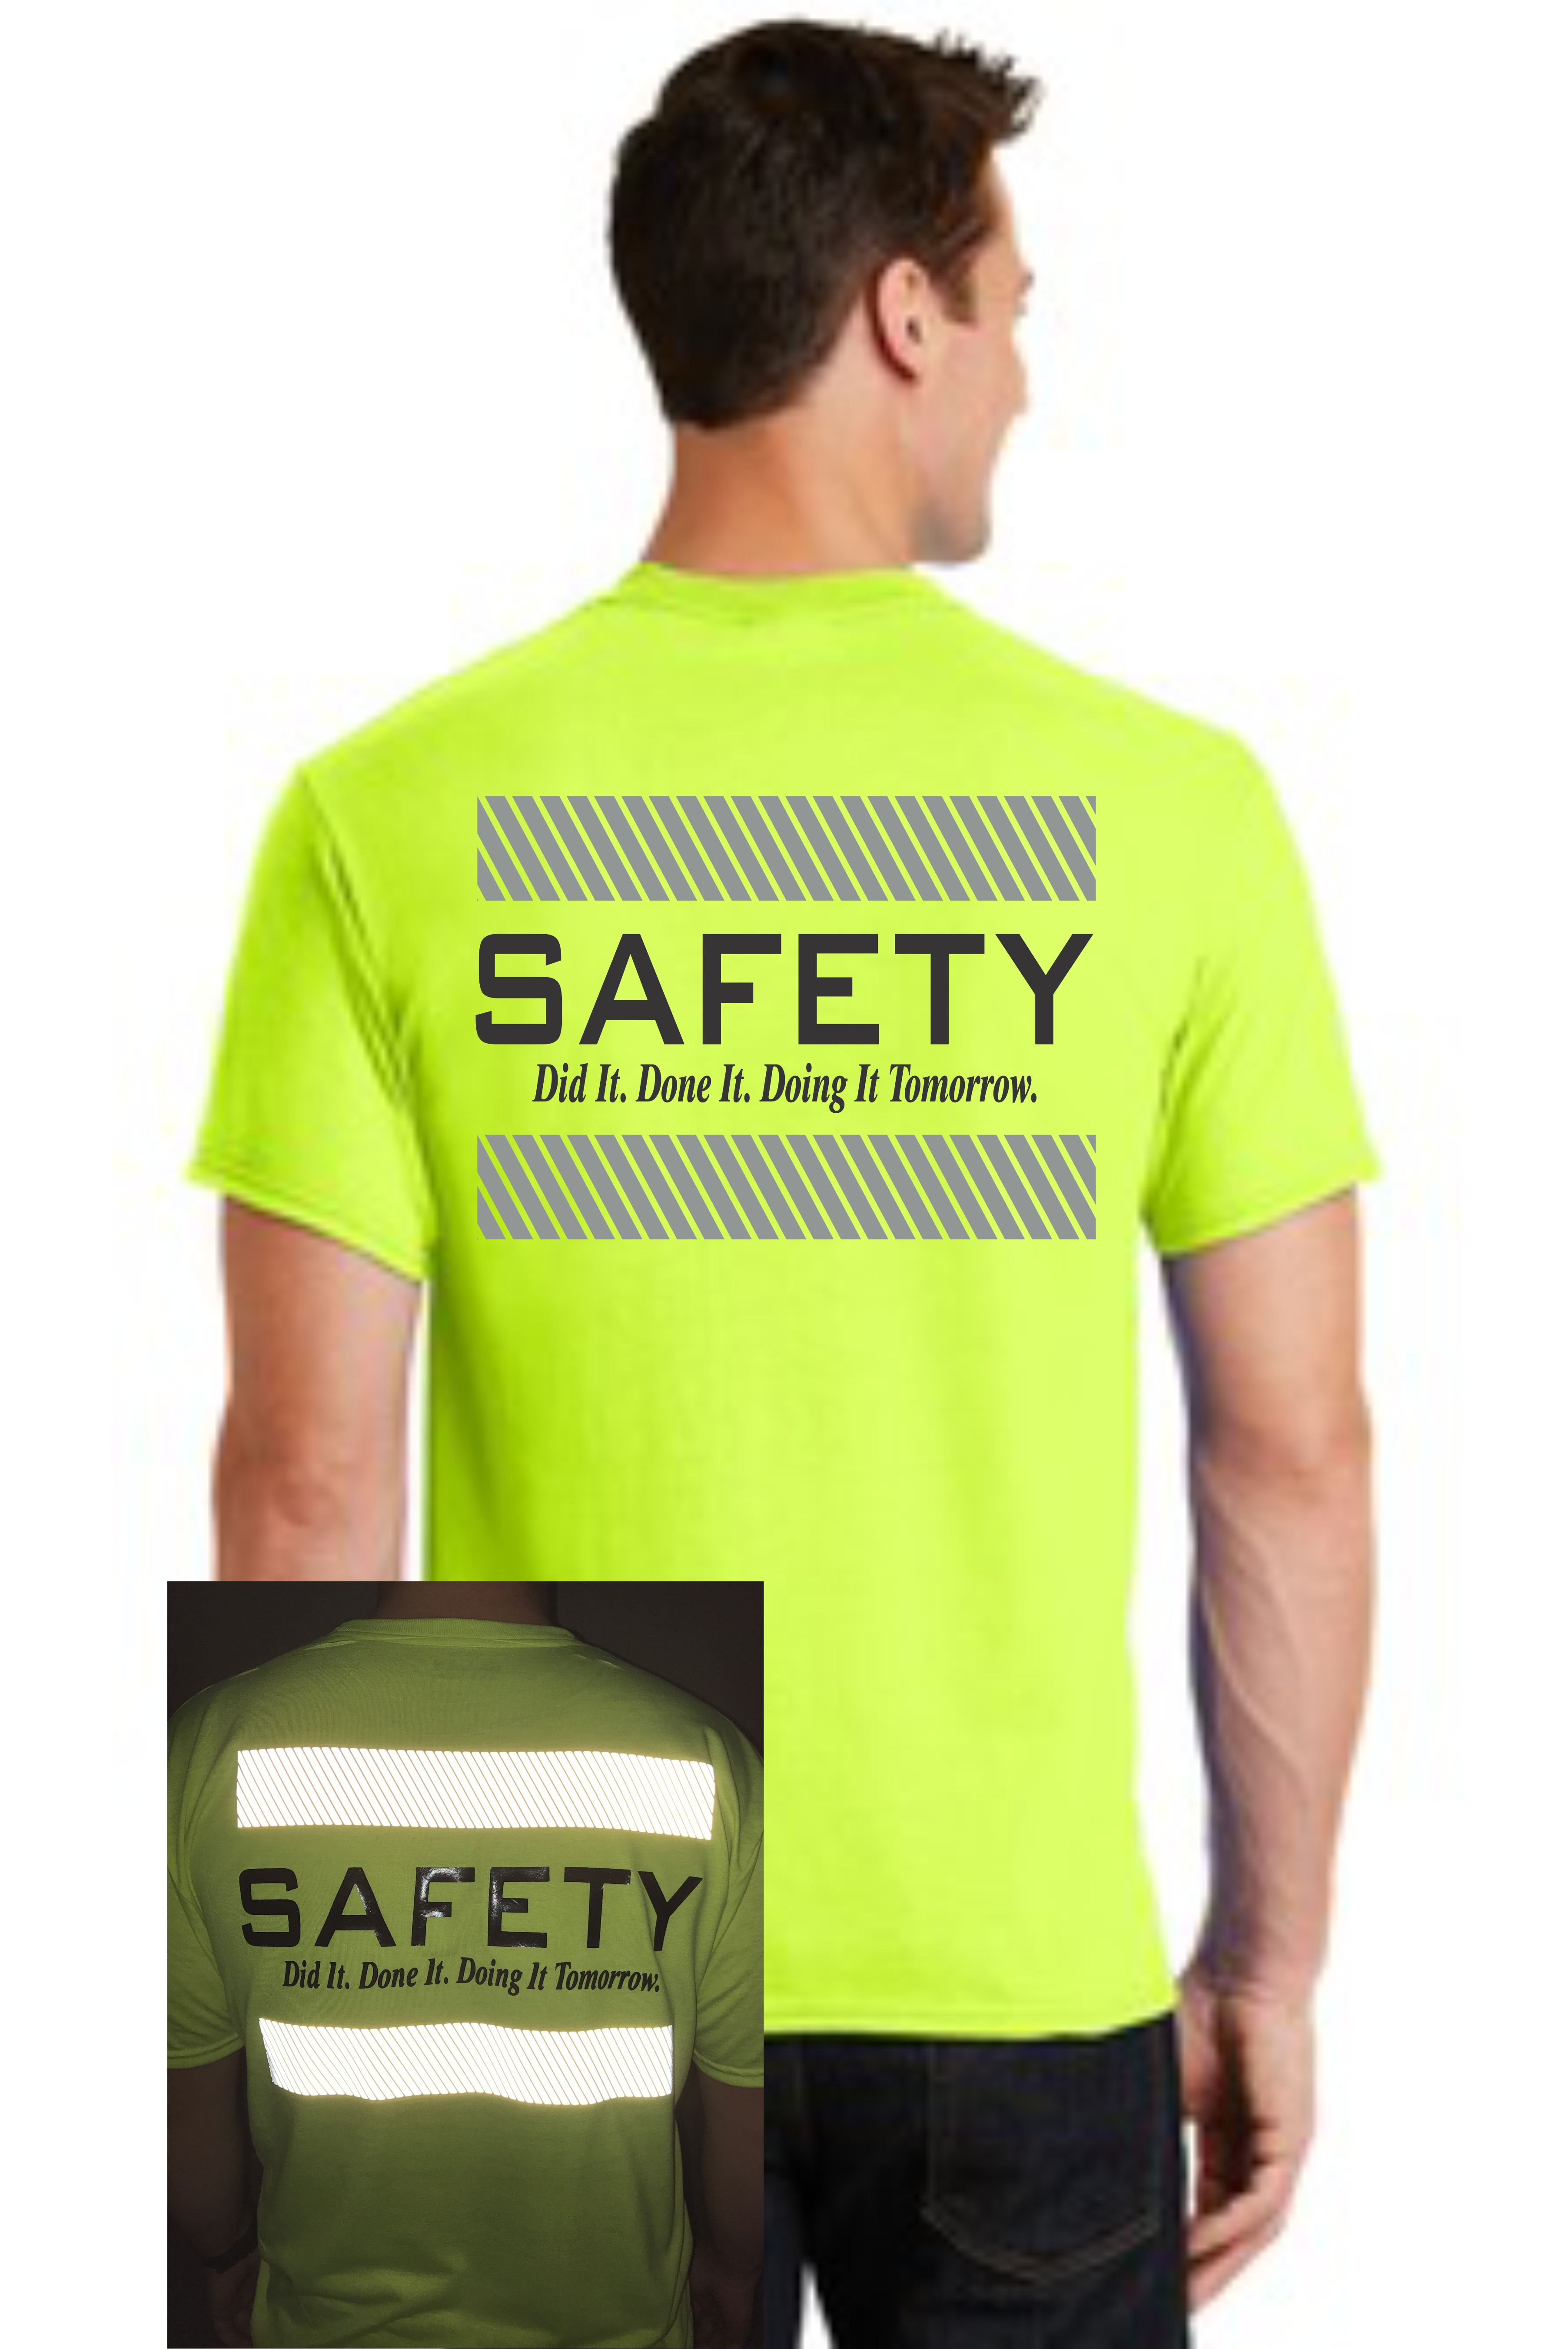 REFLECTIVE SAFETY T-SHIRT -- DID IT. DONE IT. DOING IT TOMORROW.